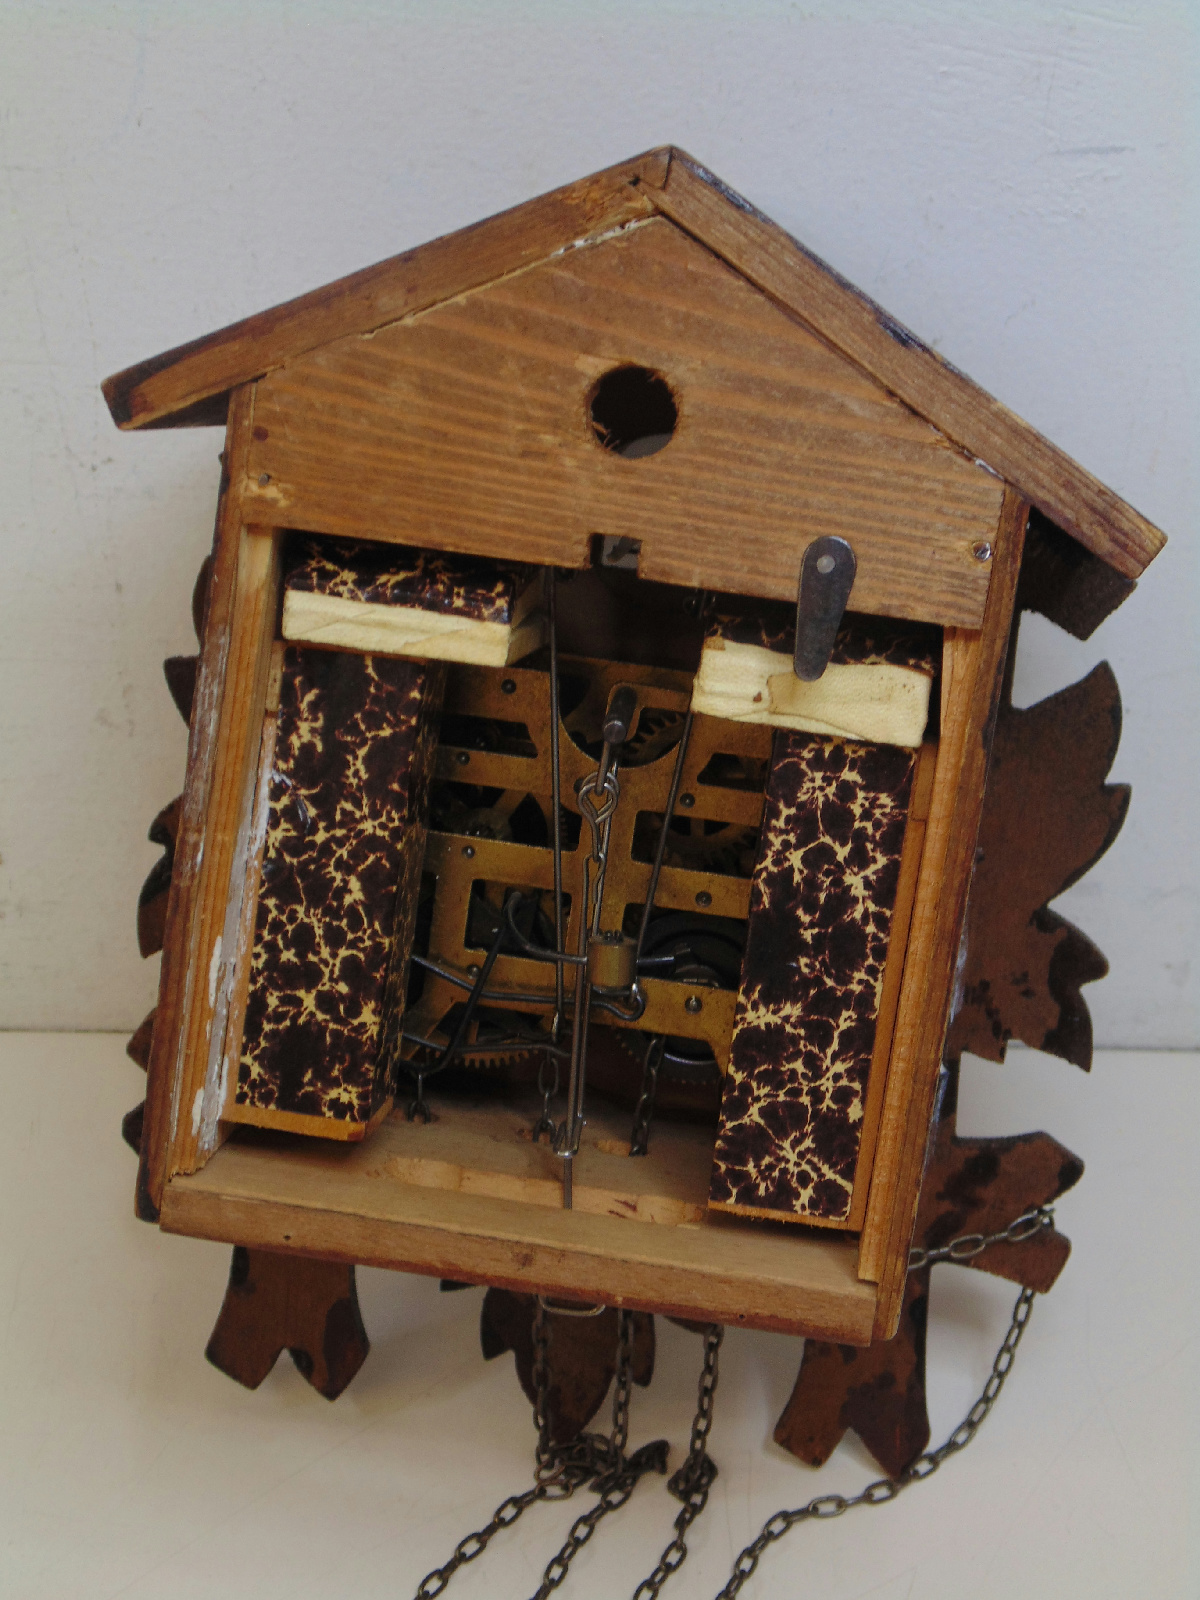 Black forest wooden cuckoo clock made in germany for parts - Wooden cuckoo clocks ...